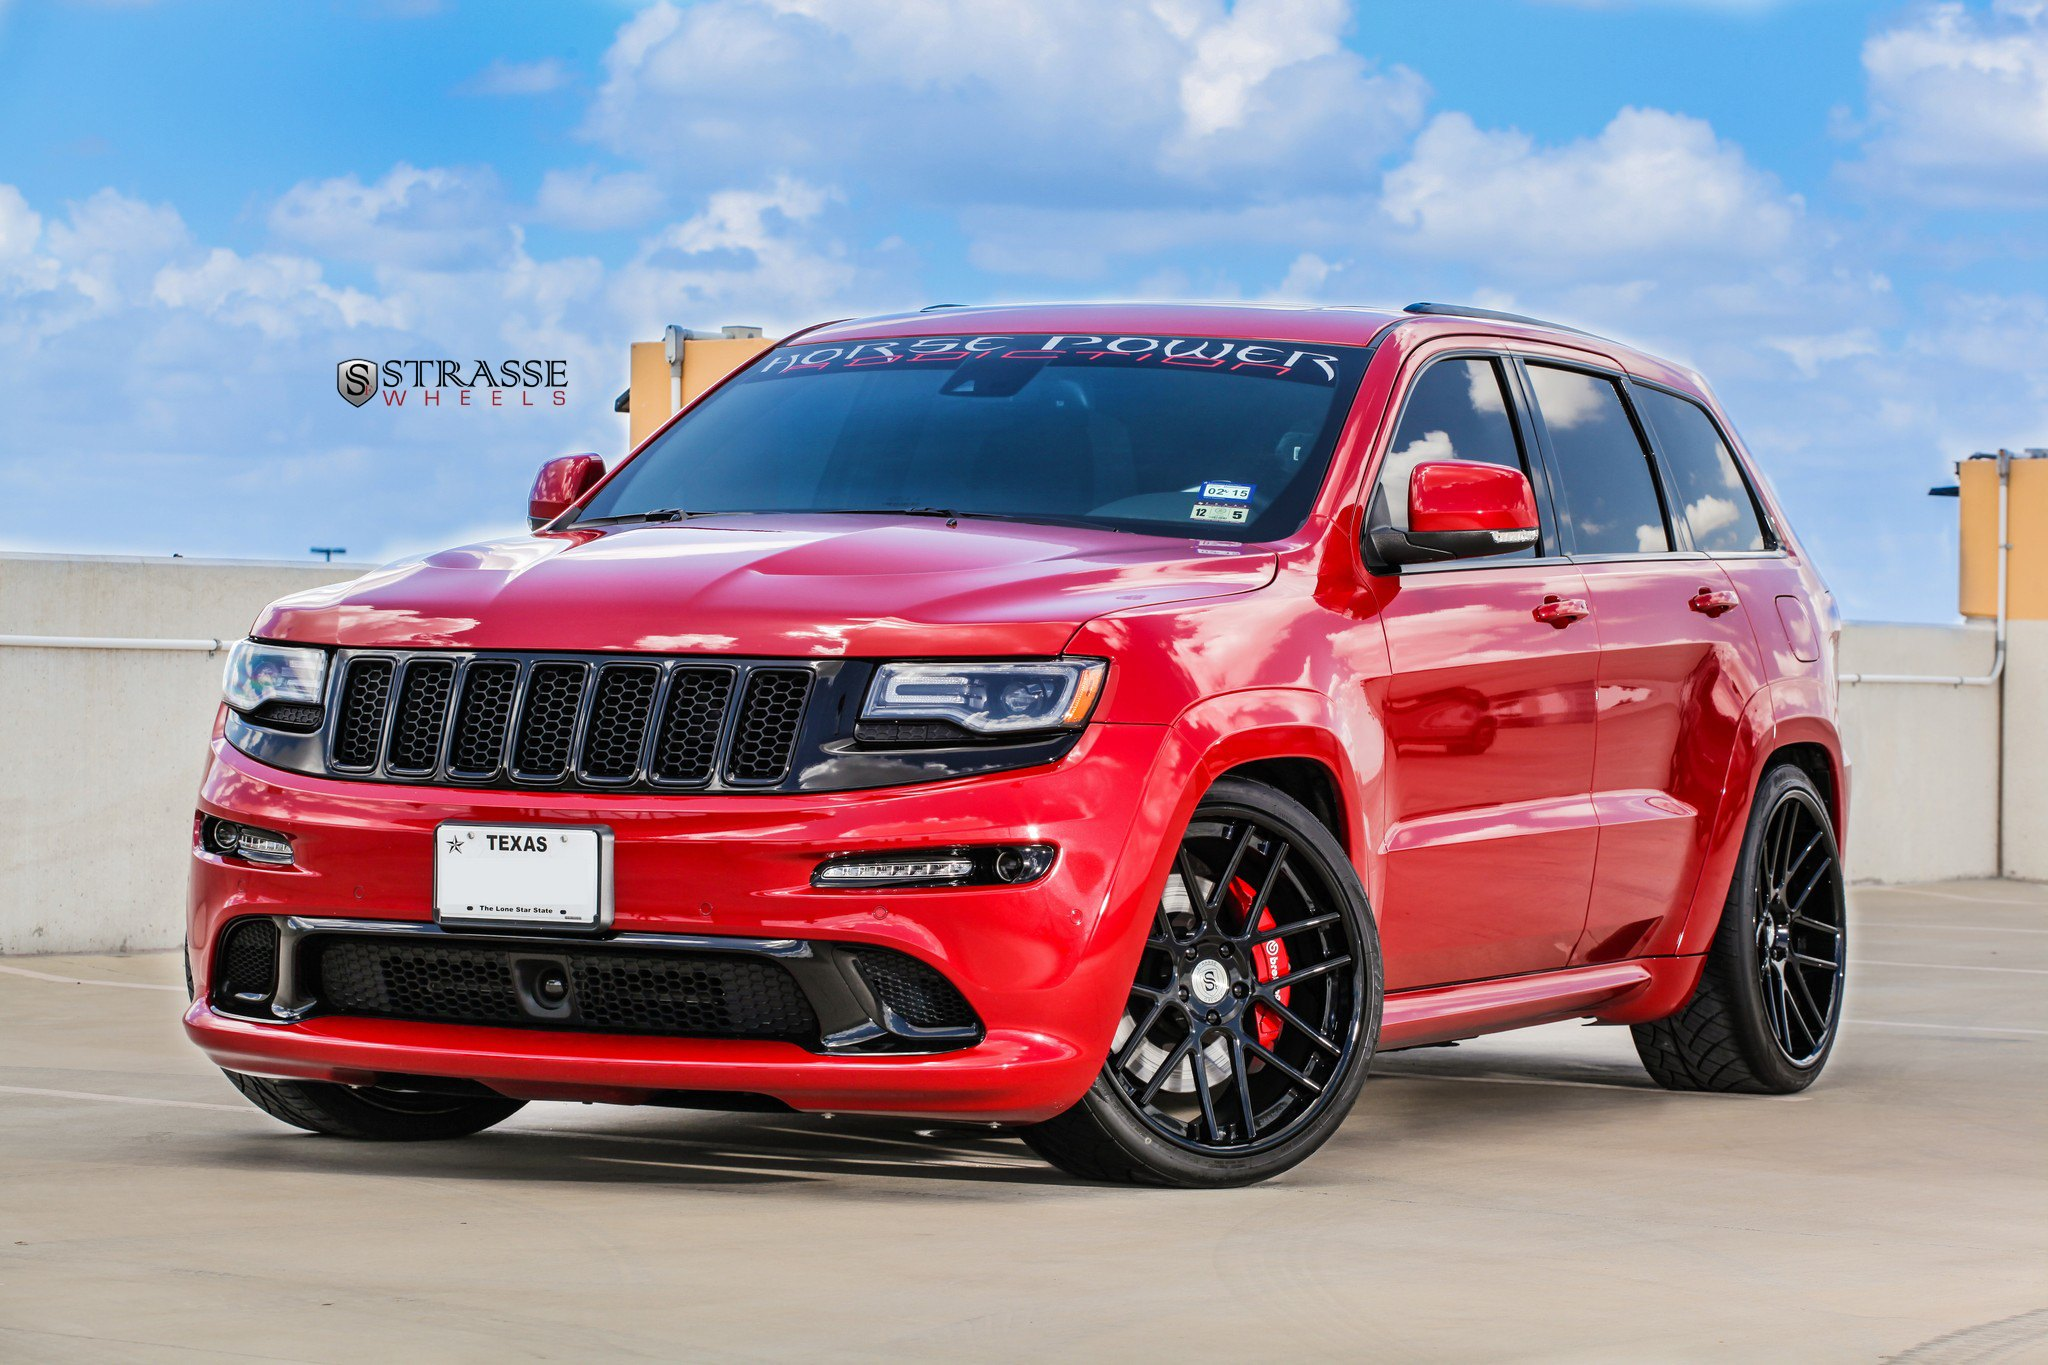 Red Jeep Grand Cherokee With Blacked Out Grille   Photo By Strasse Forged